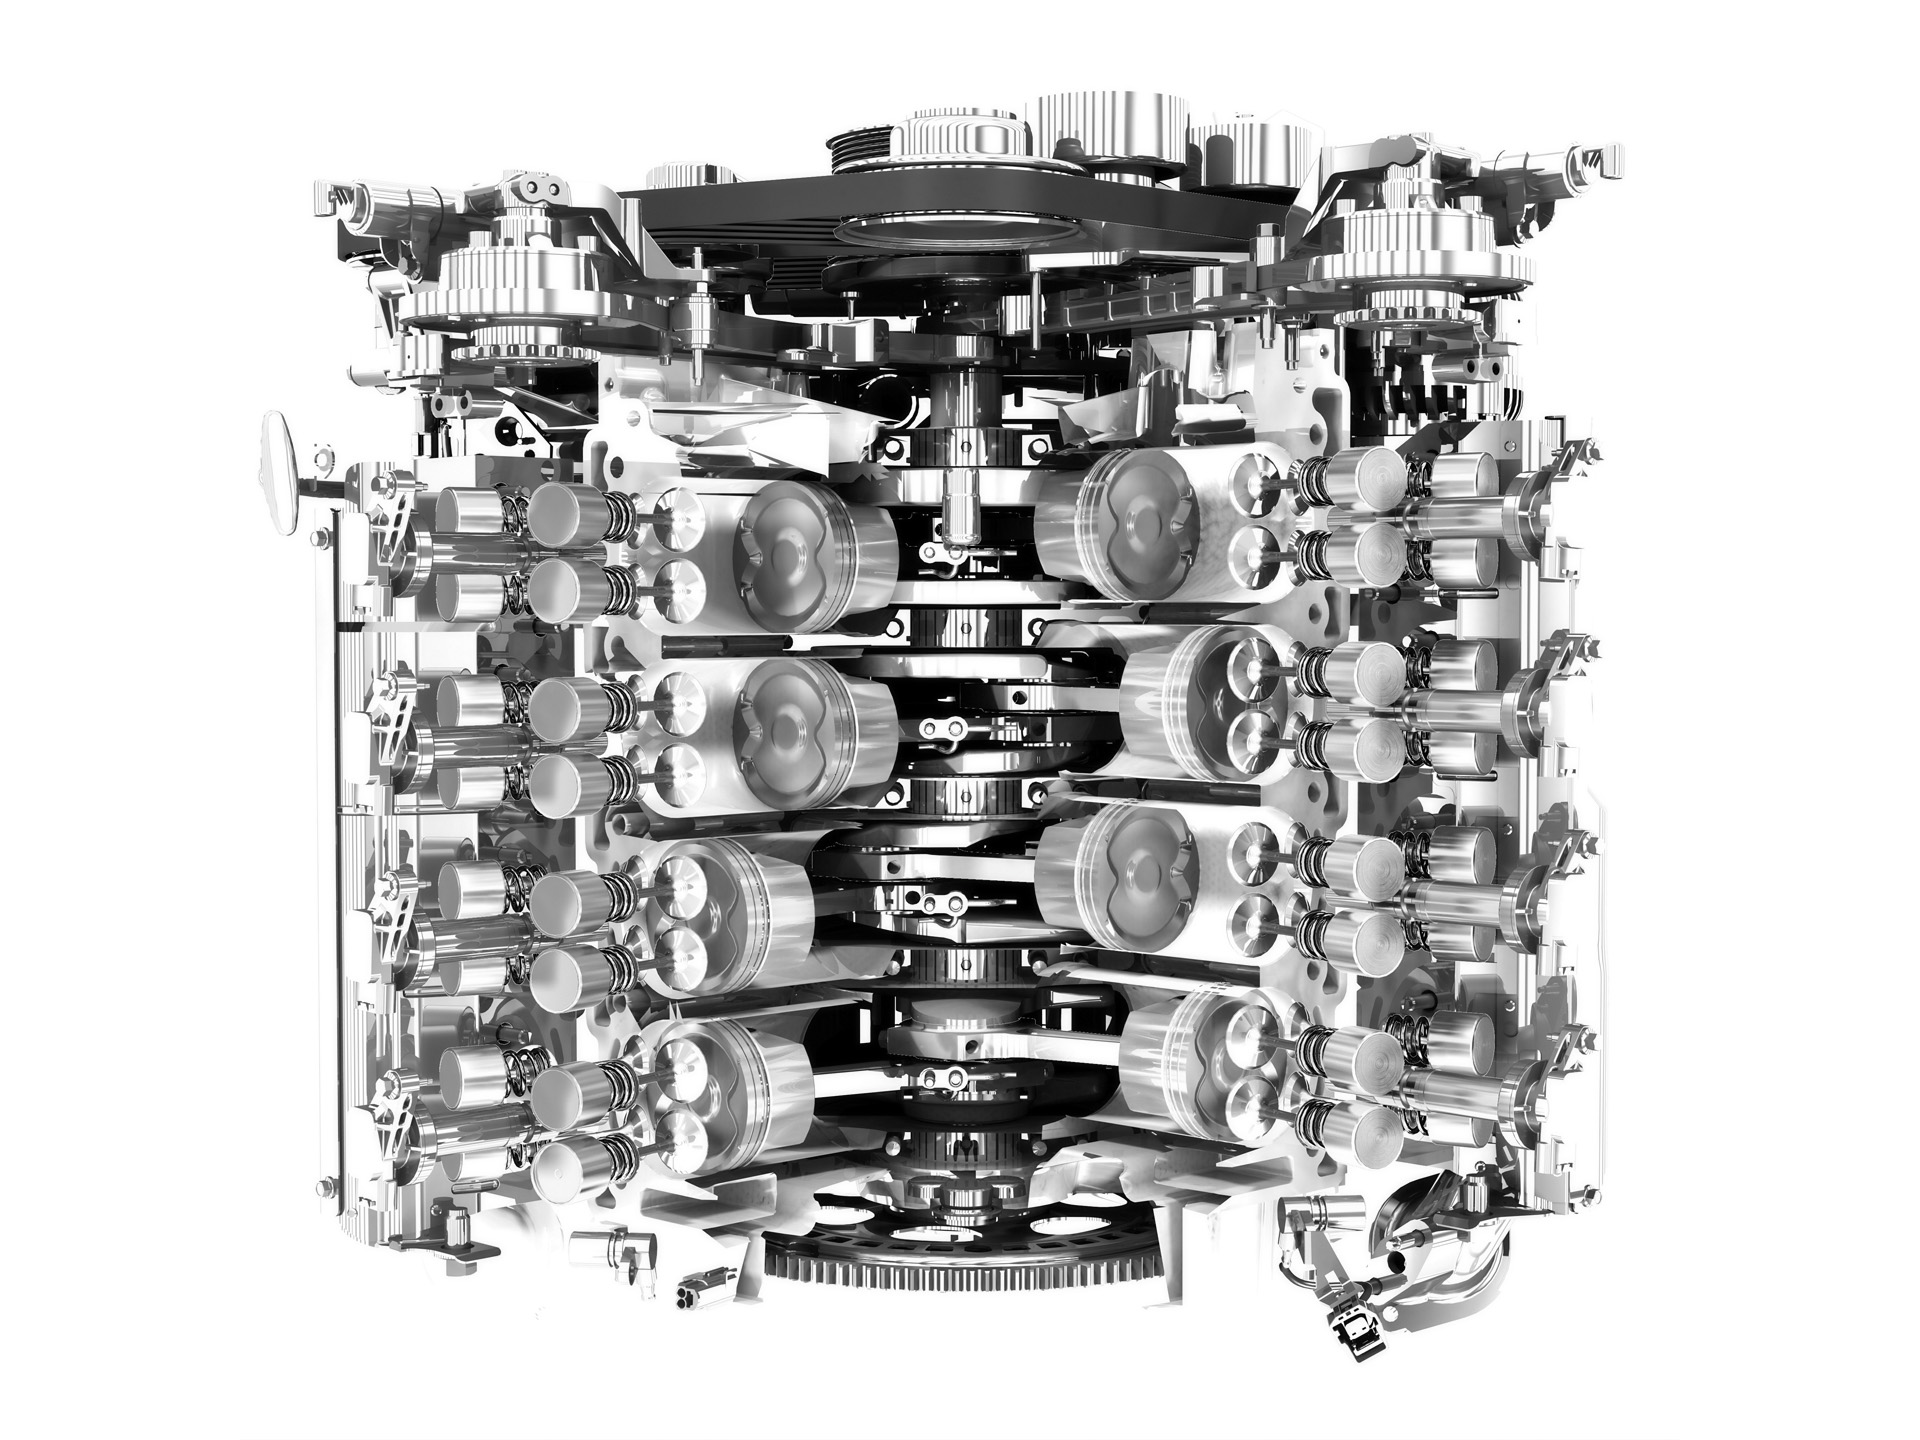 Sample P2180 Engine